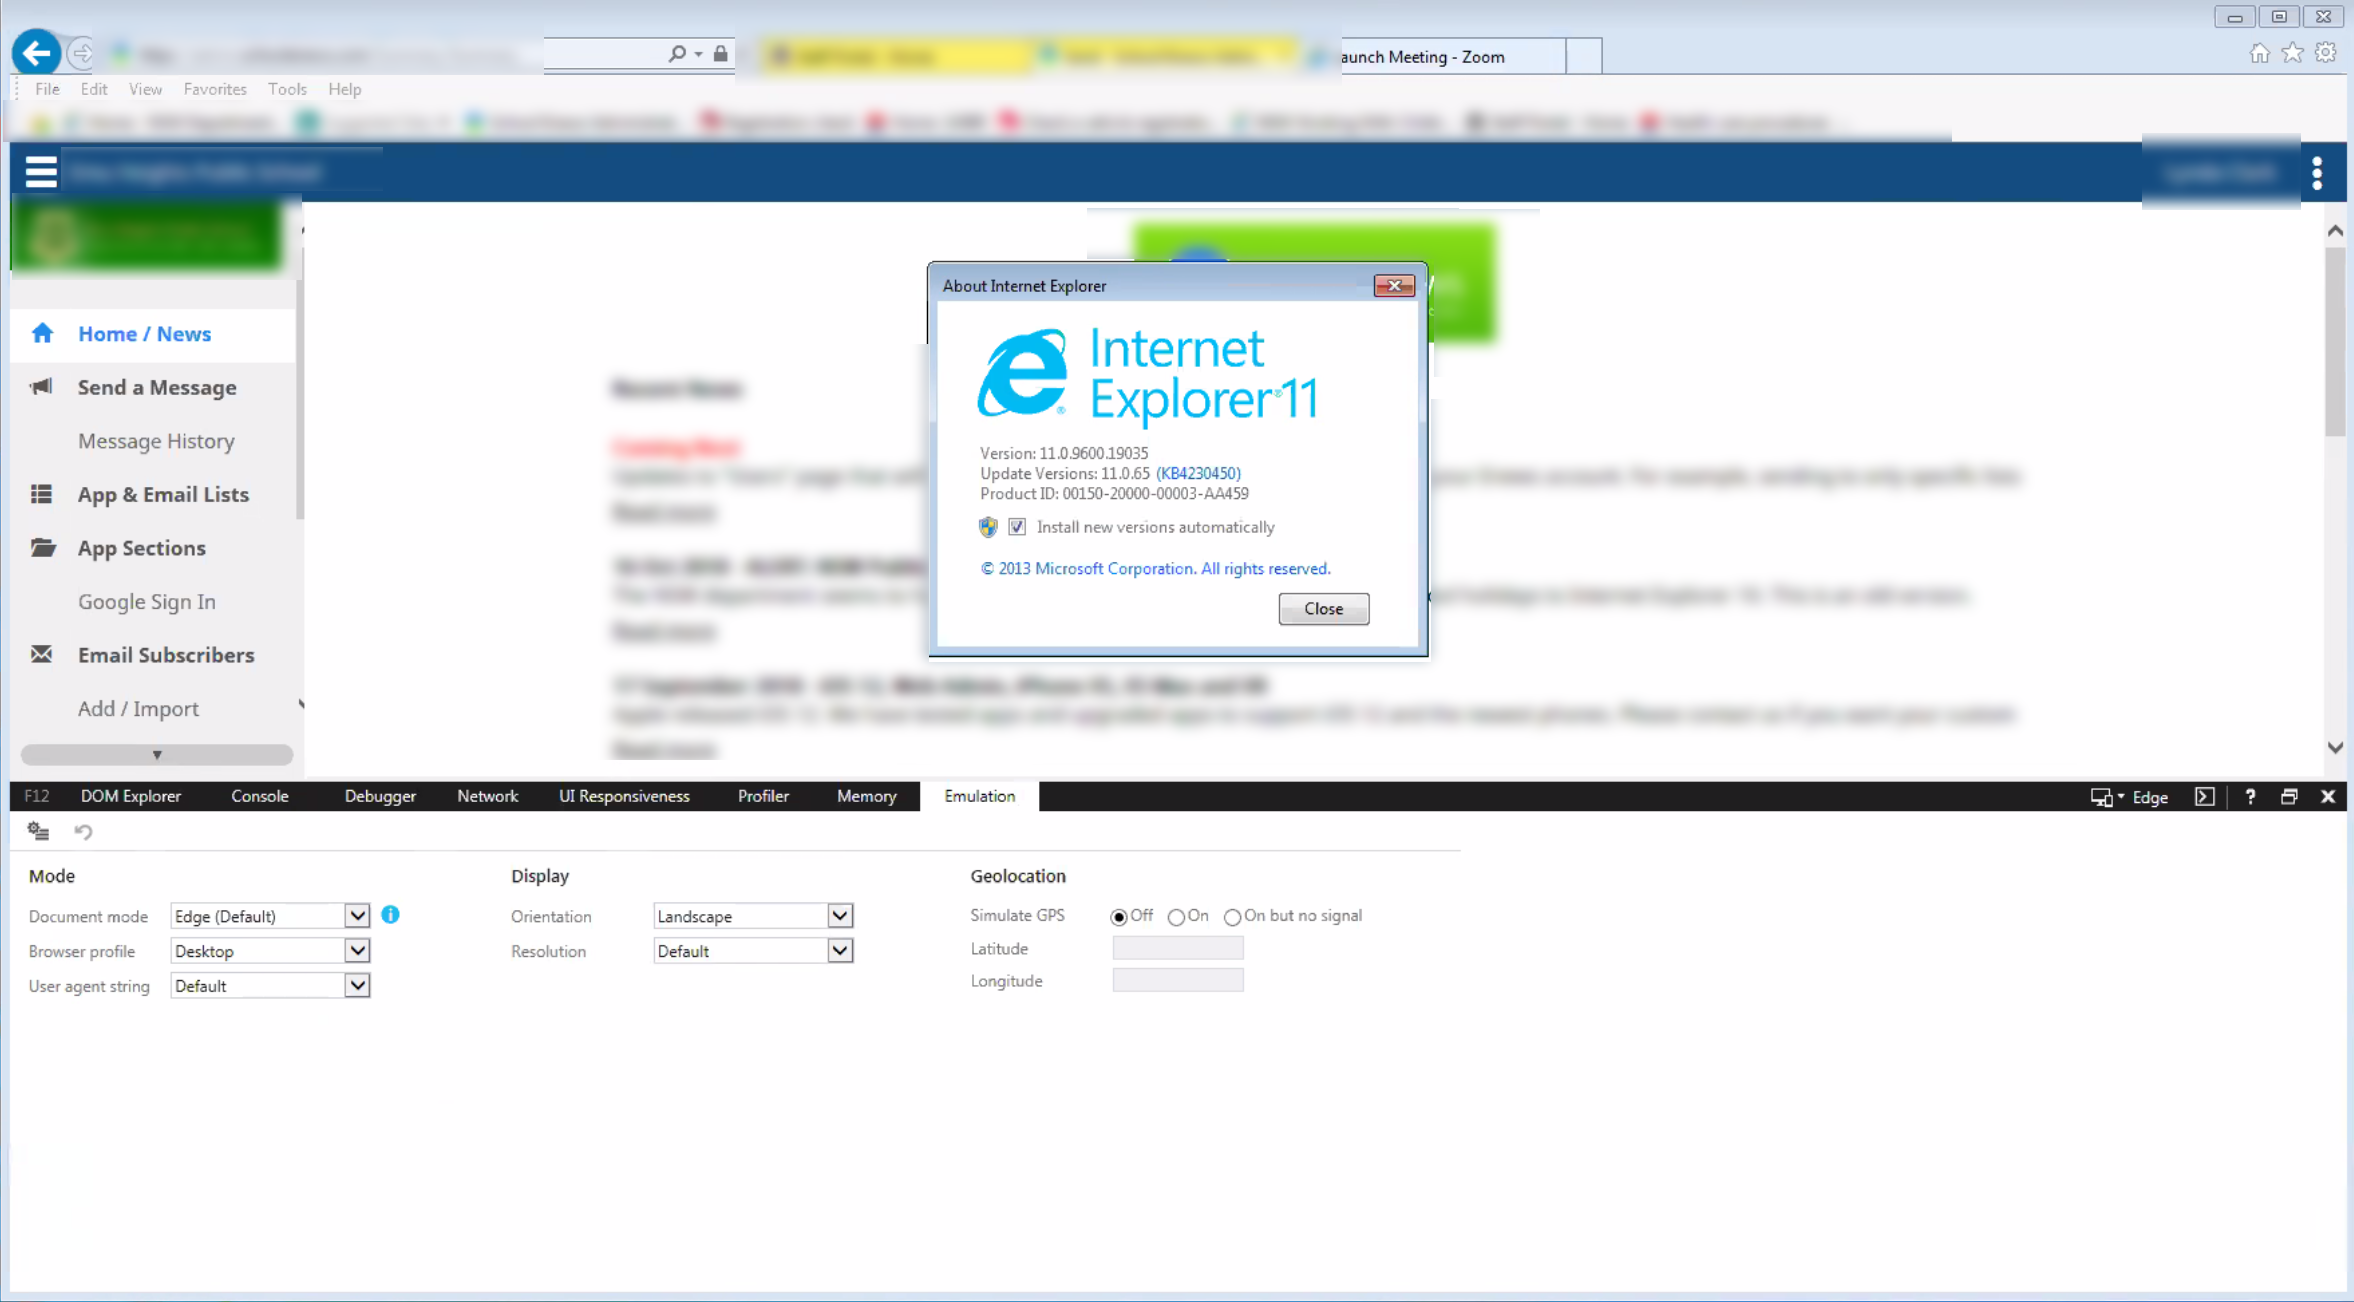 IE 11 clicking on wysiwig editor causes browser to crash